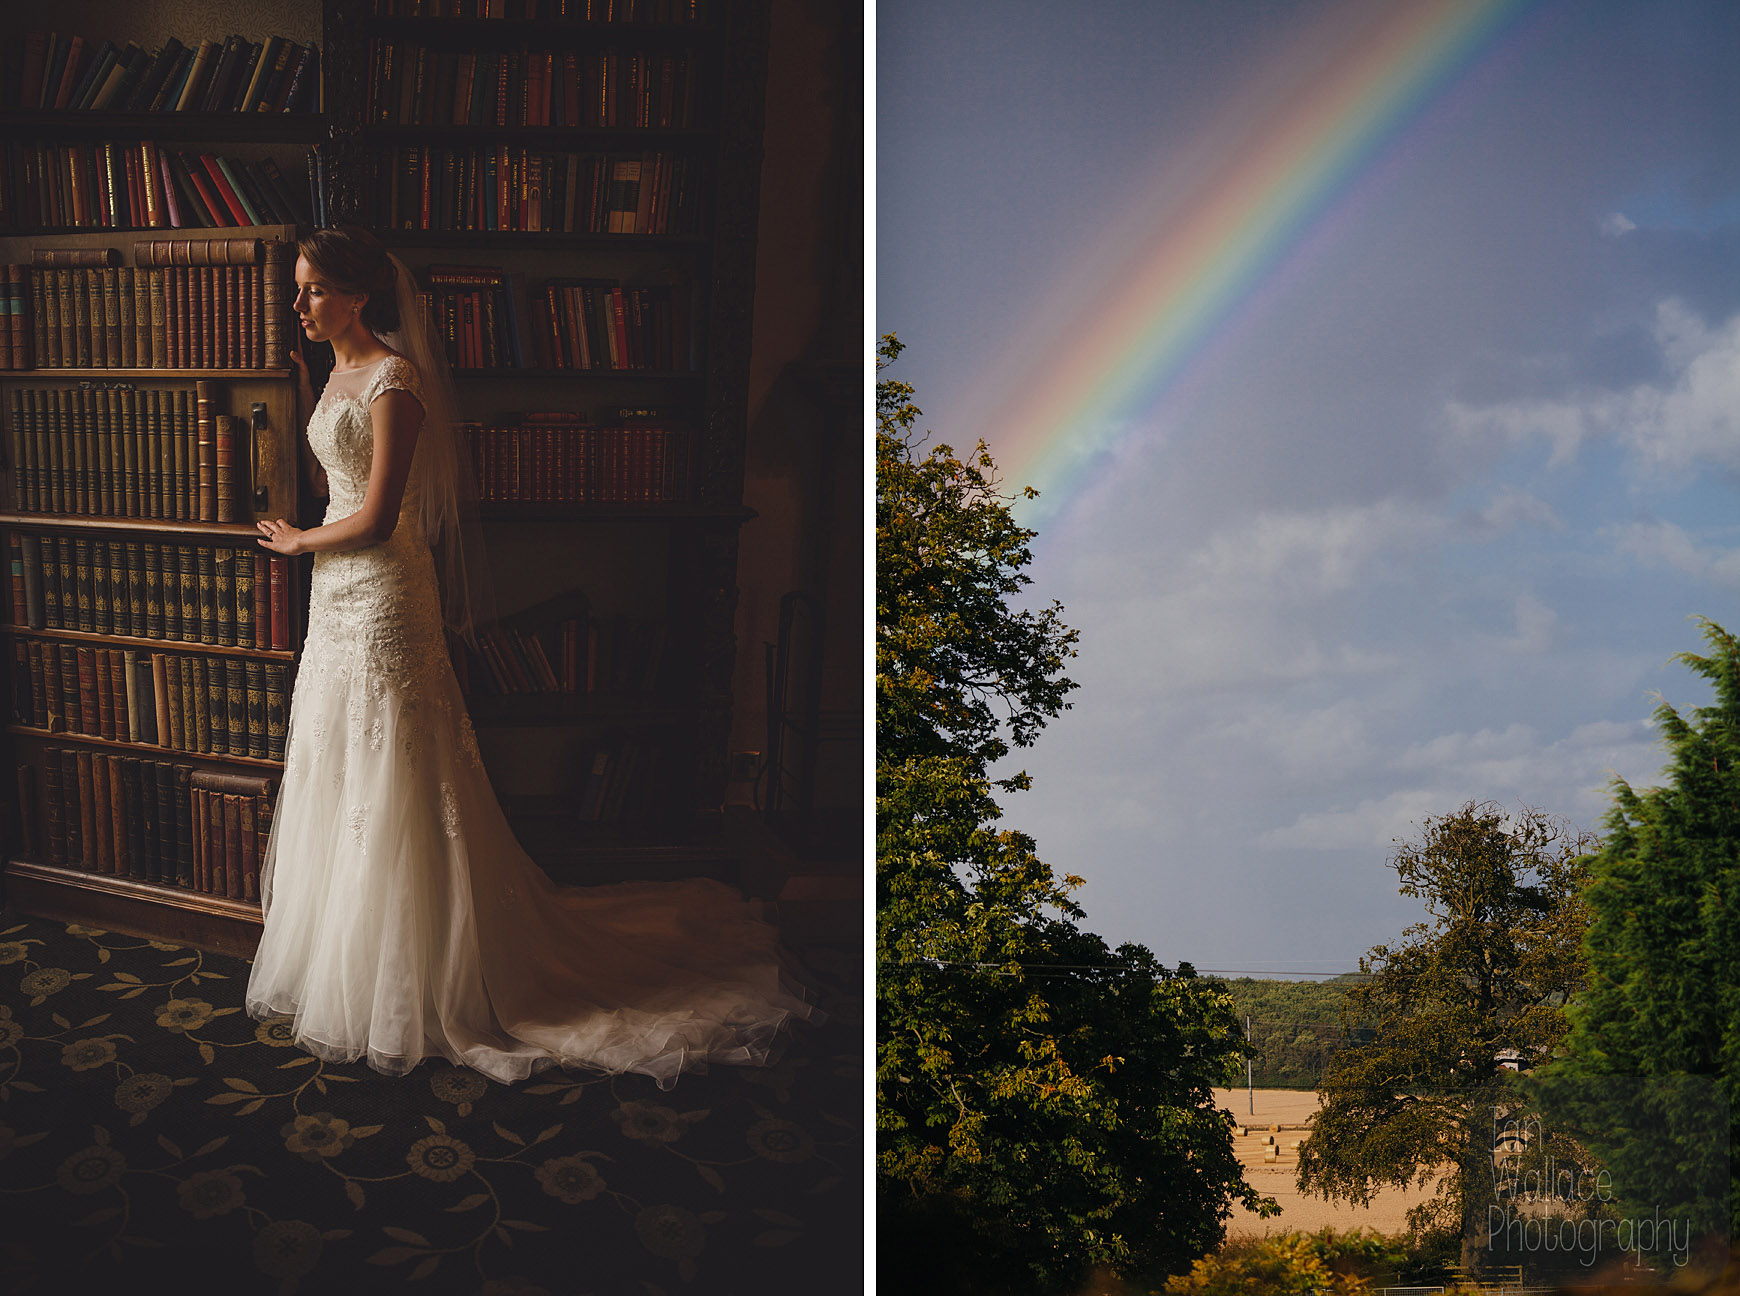 We got a rainbow! Also, the bride in a fine art photo against a secret staircase in the library